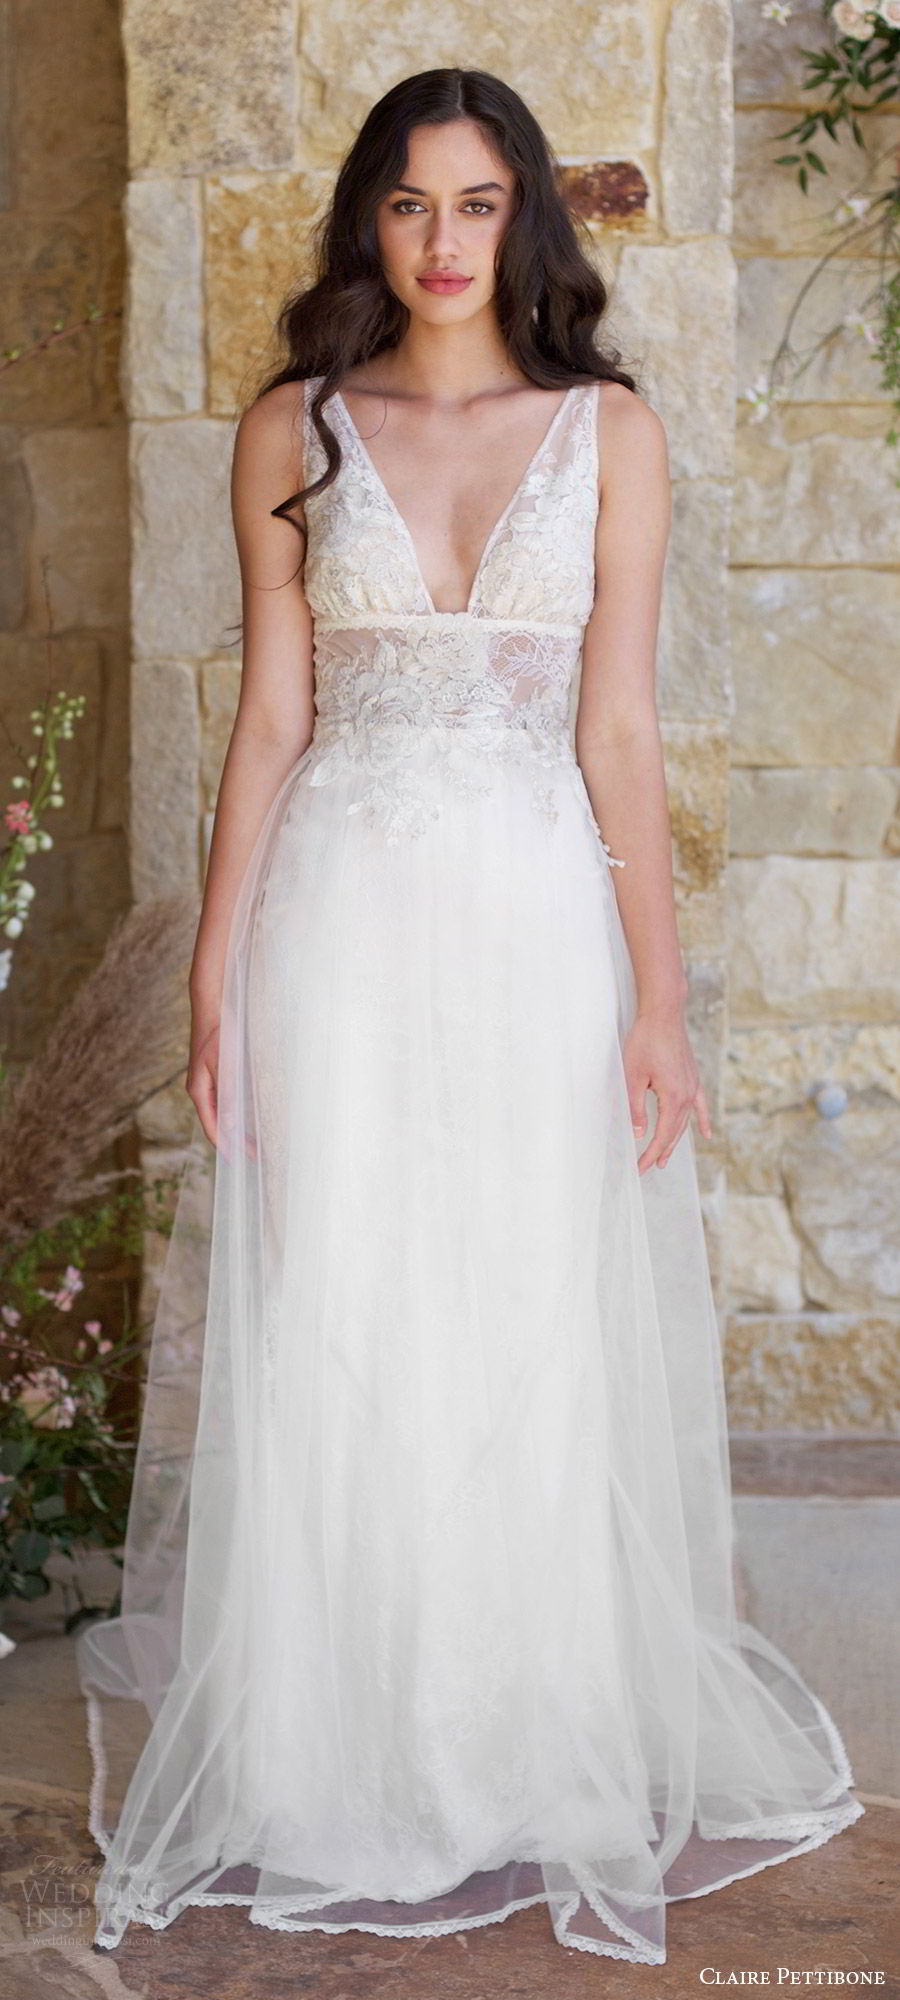 claire pettibone spring 2018 bridal sleeveless deep v neck straps lace bodice a line wedding dress (champagne) mv romantic long train